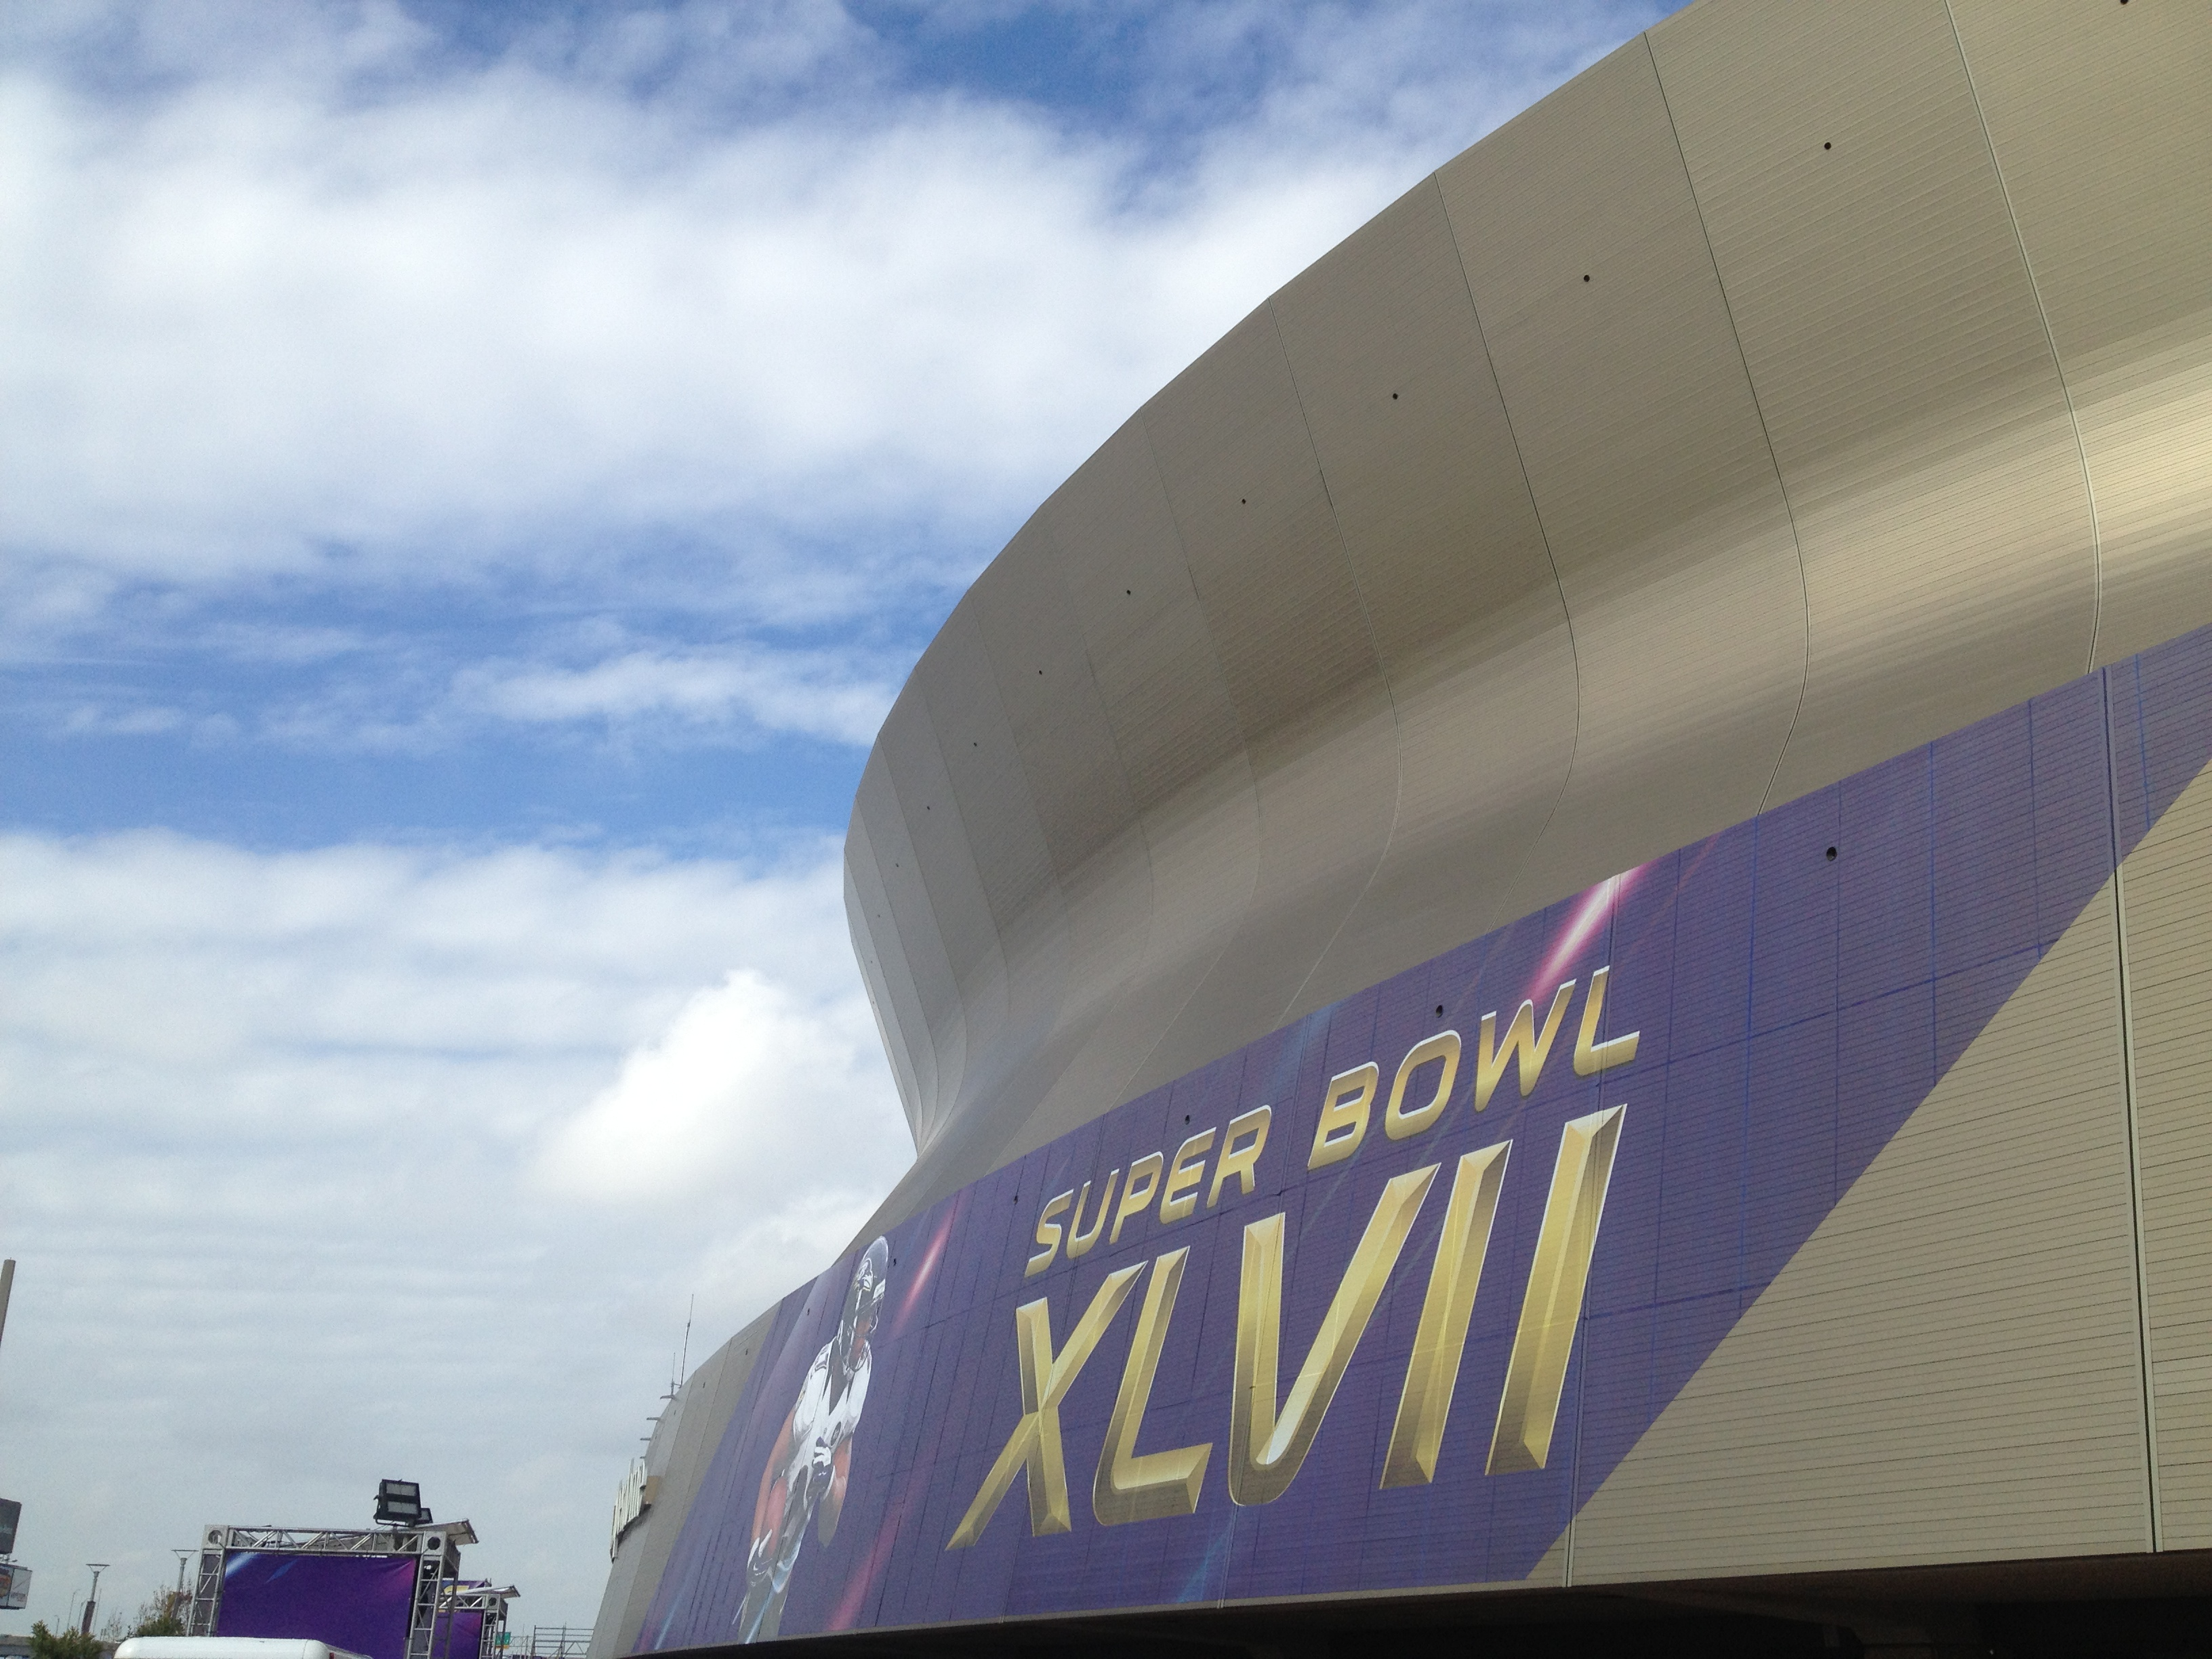 2013 01 28 11.12.49 Atlanta crew heads to NOLA for Superbowl XLVII